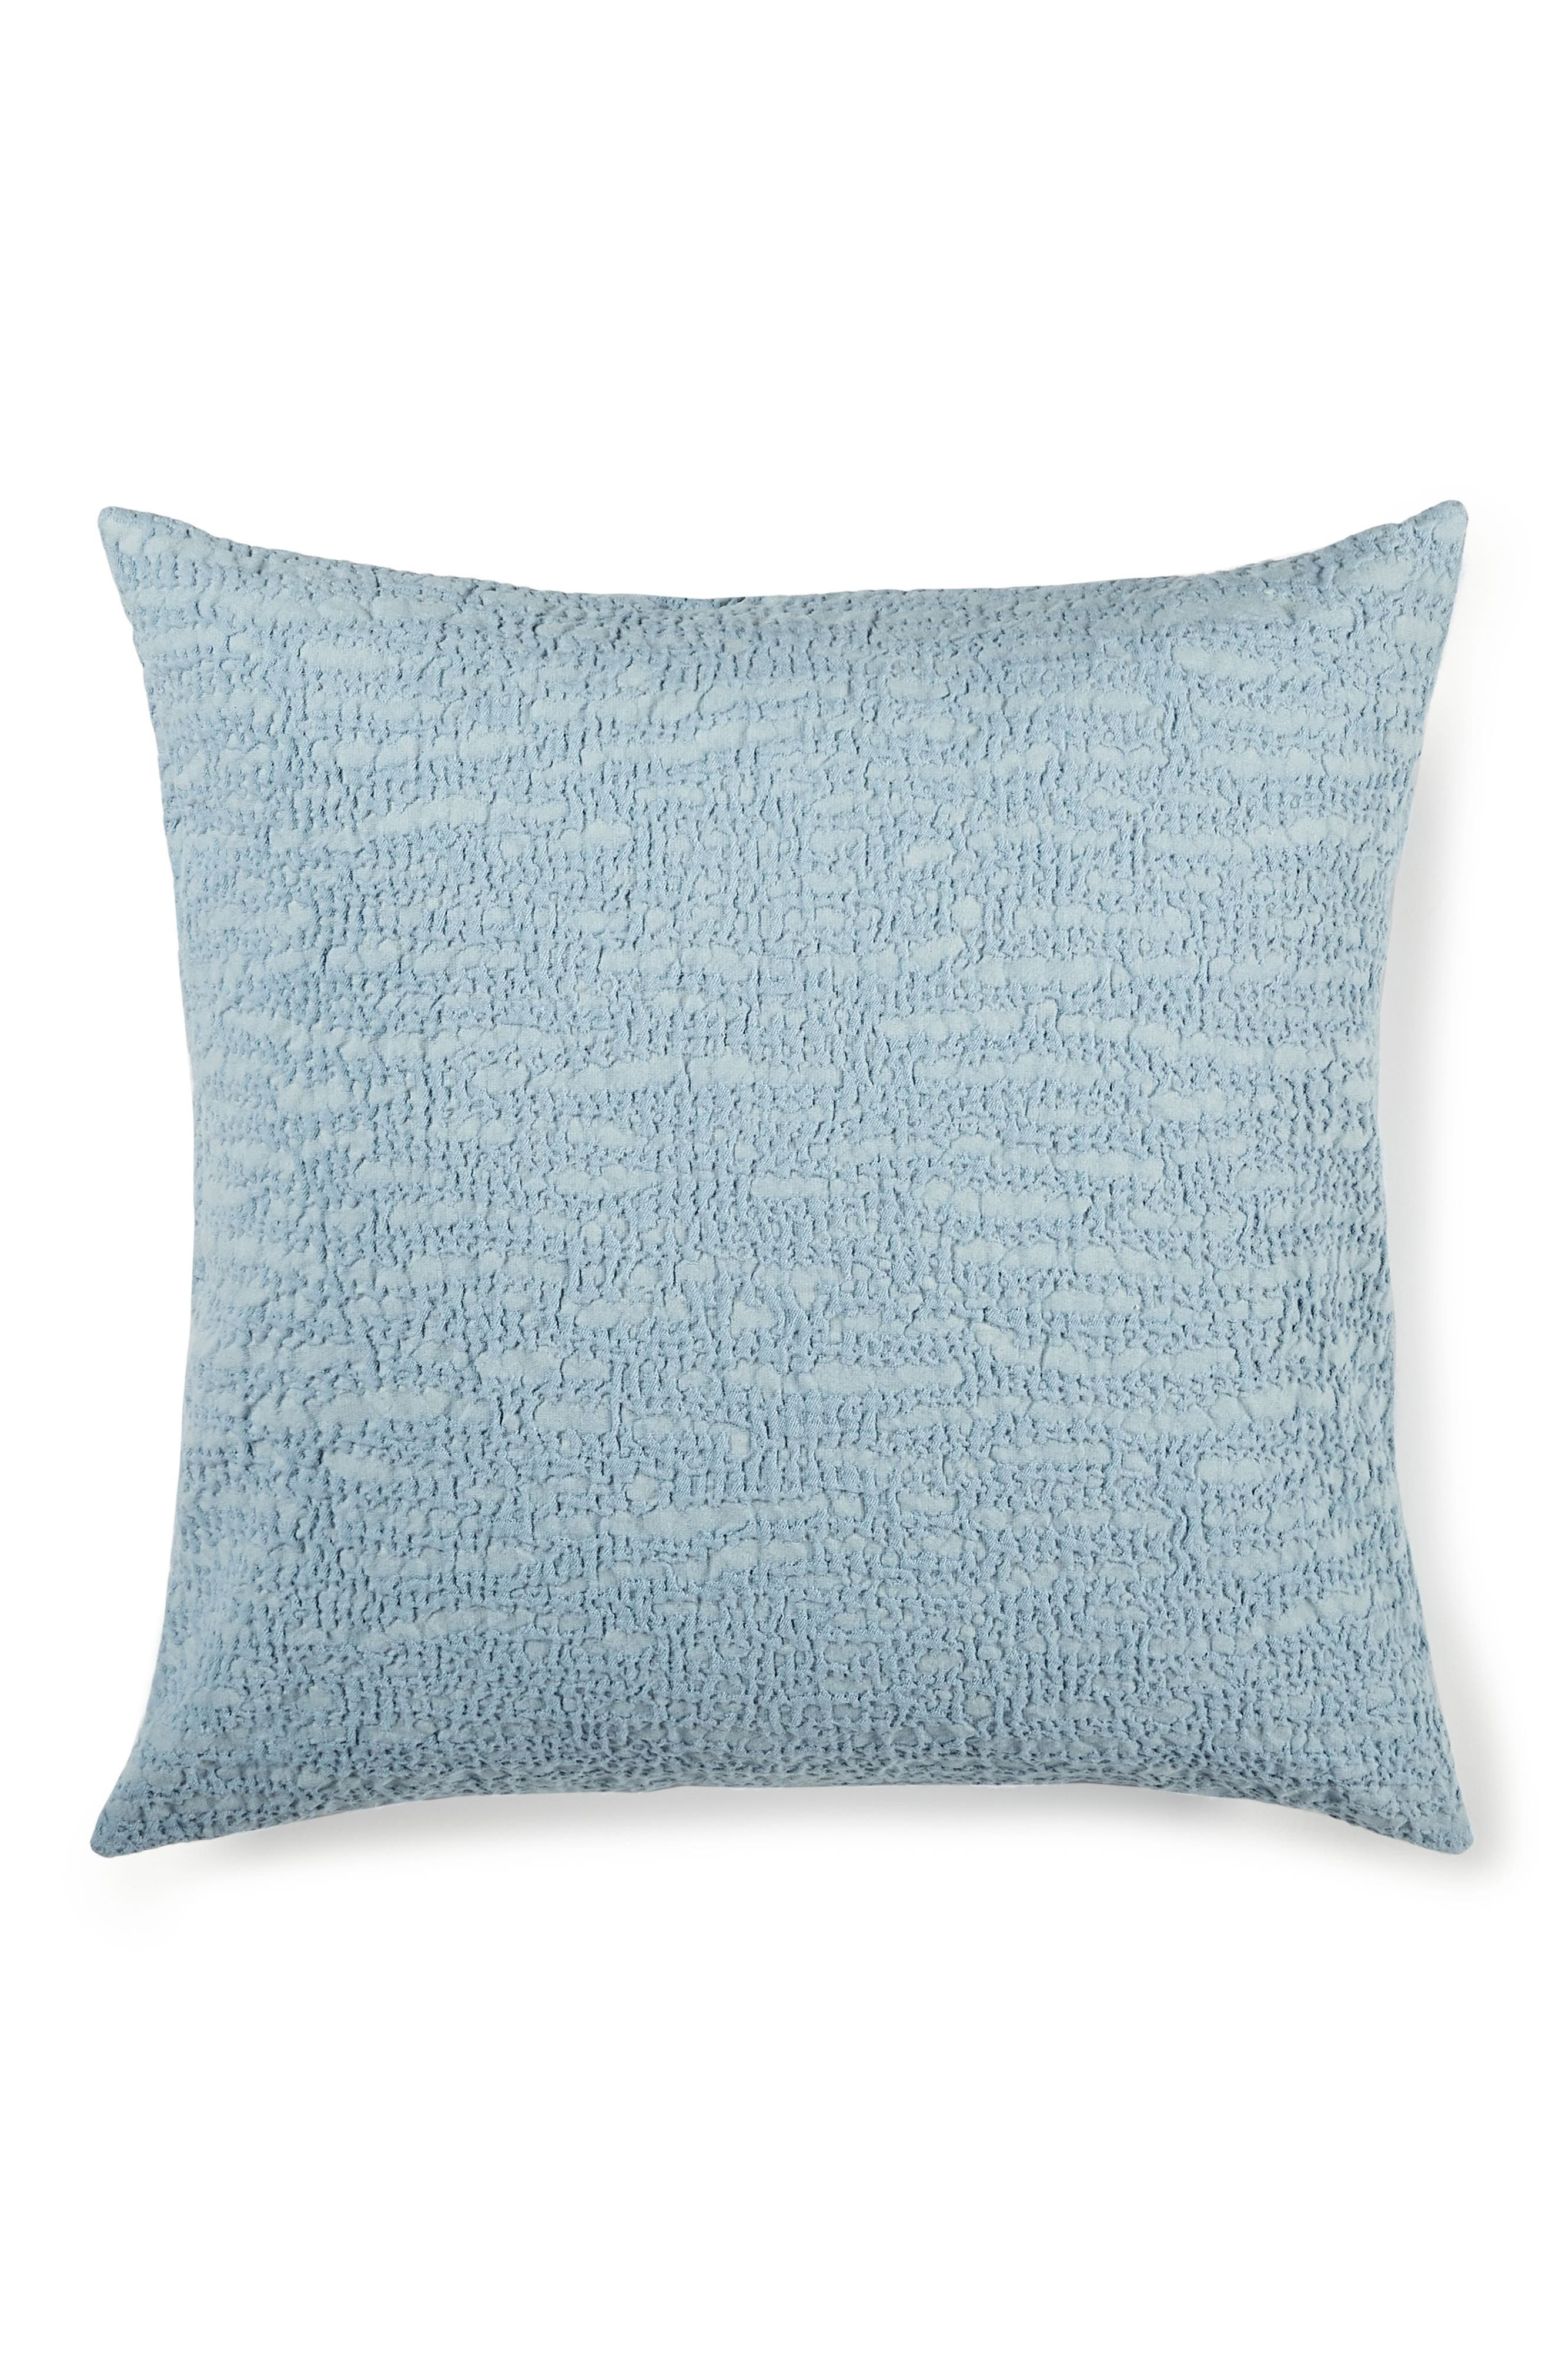 Mani Accent Pillow,                             Main thumbnail 1, color,                             CELESTIAL